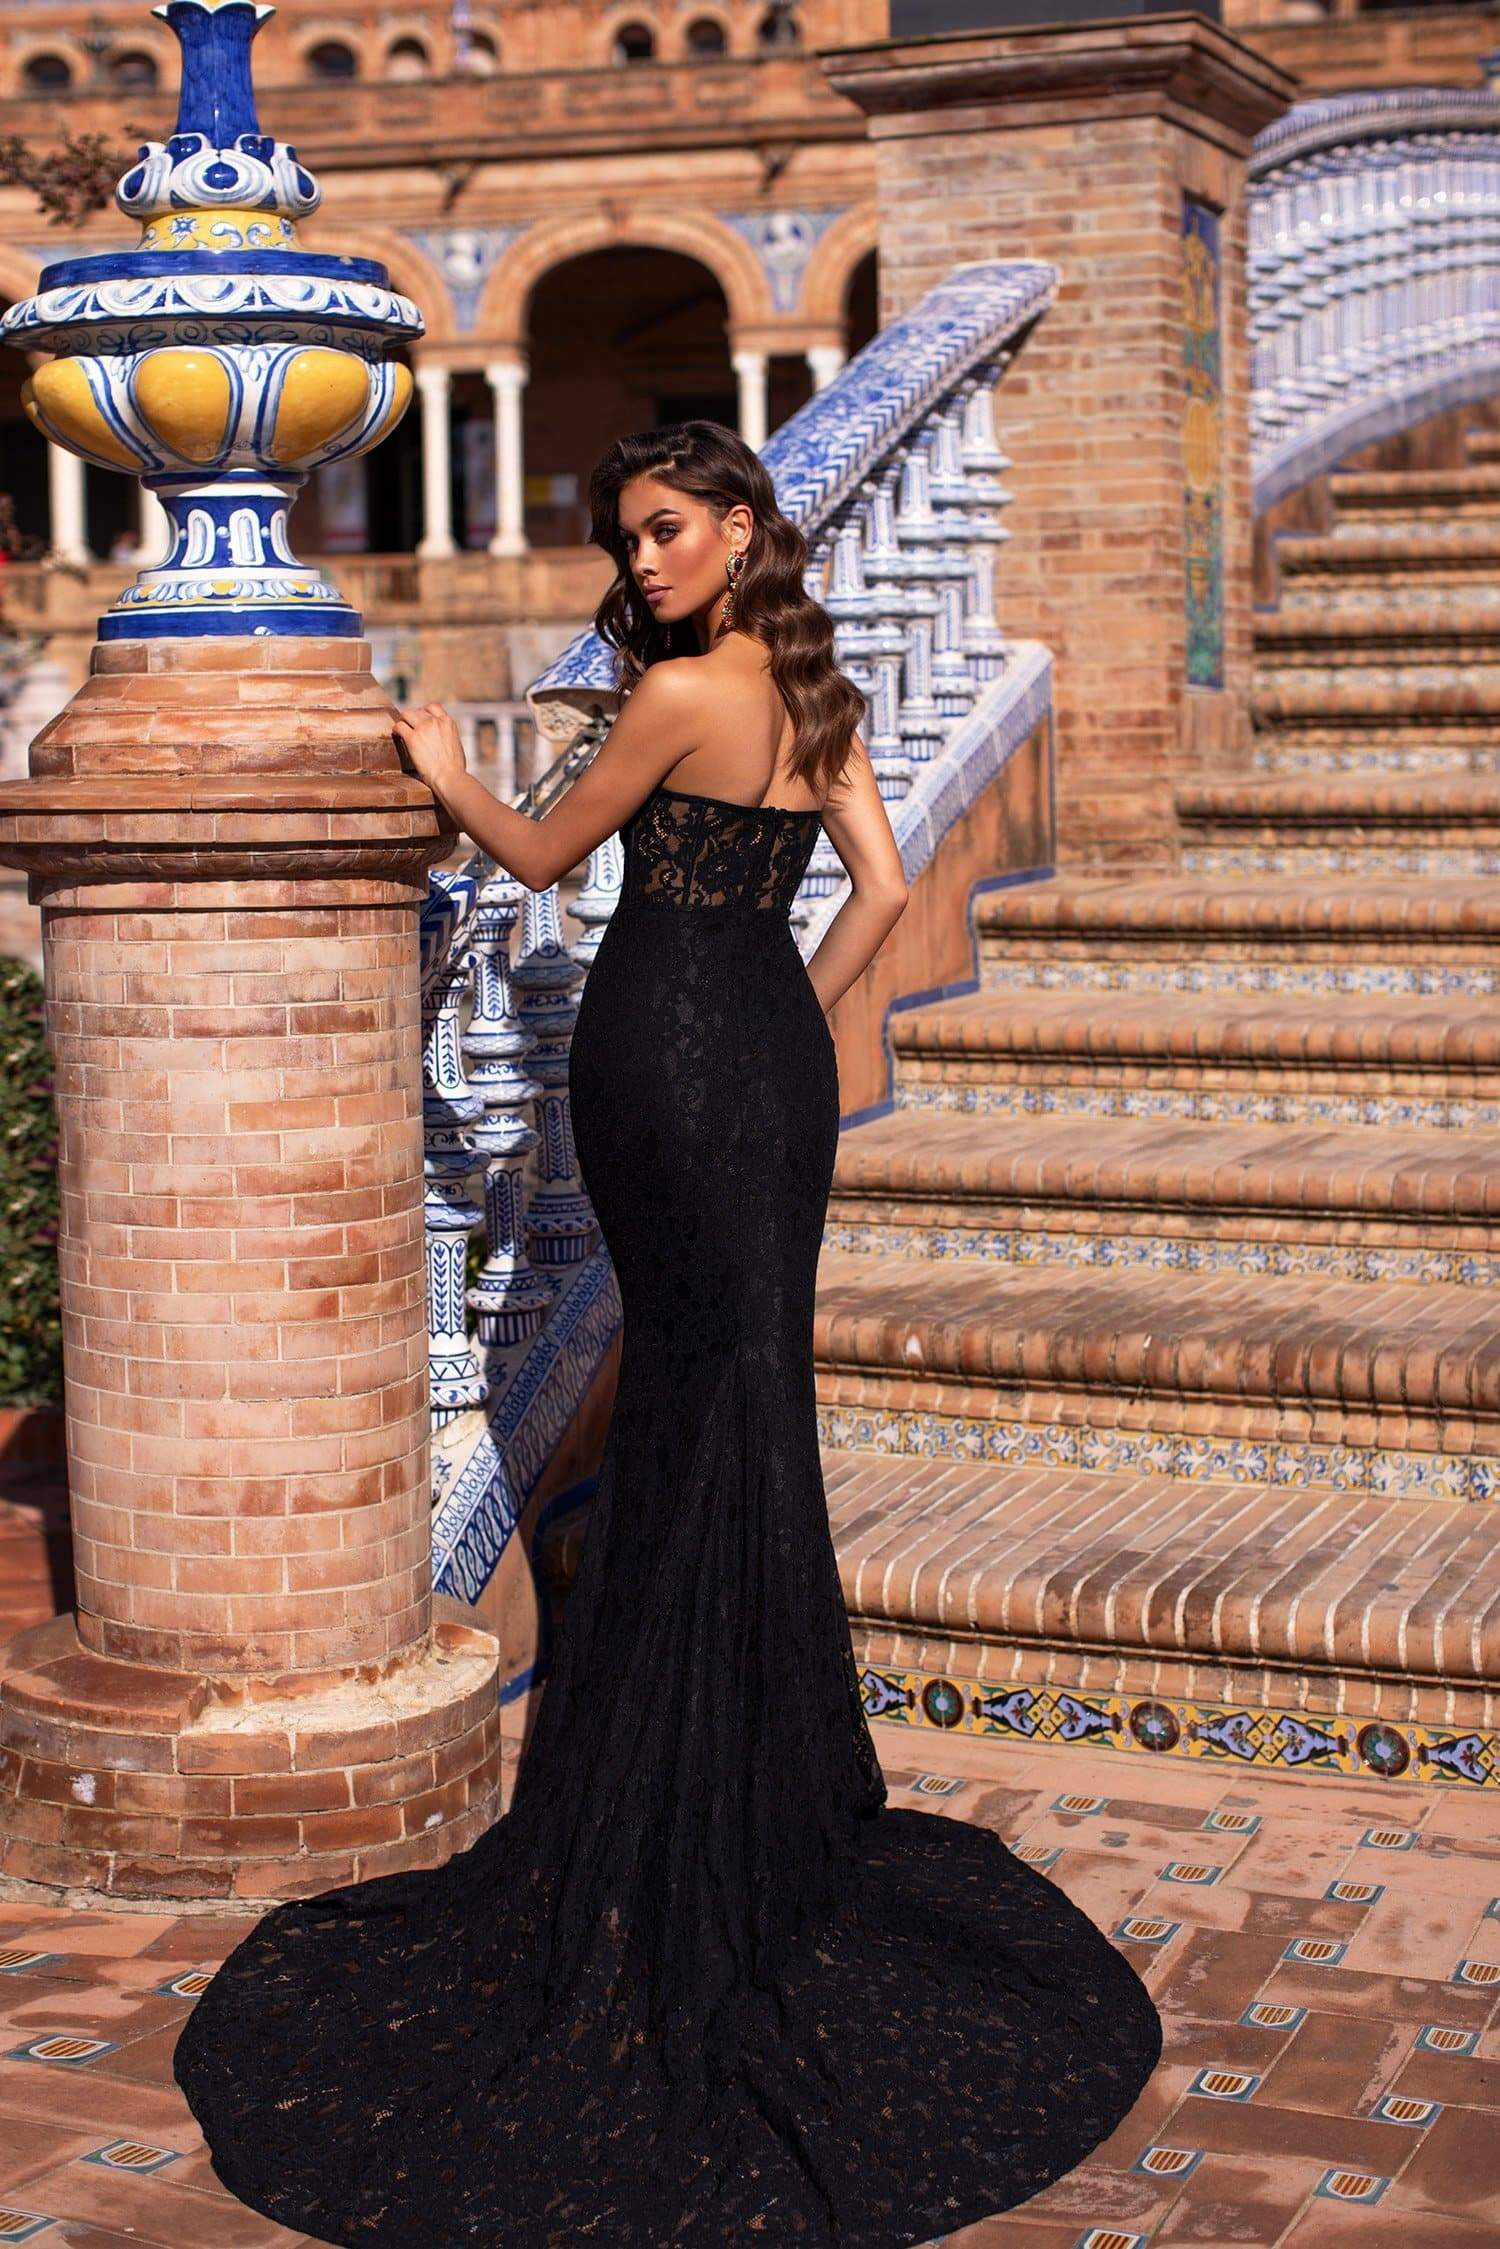 Rebeka - Black Strapless Sweetheart Premium Lace Gown with Sheer Waist